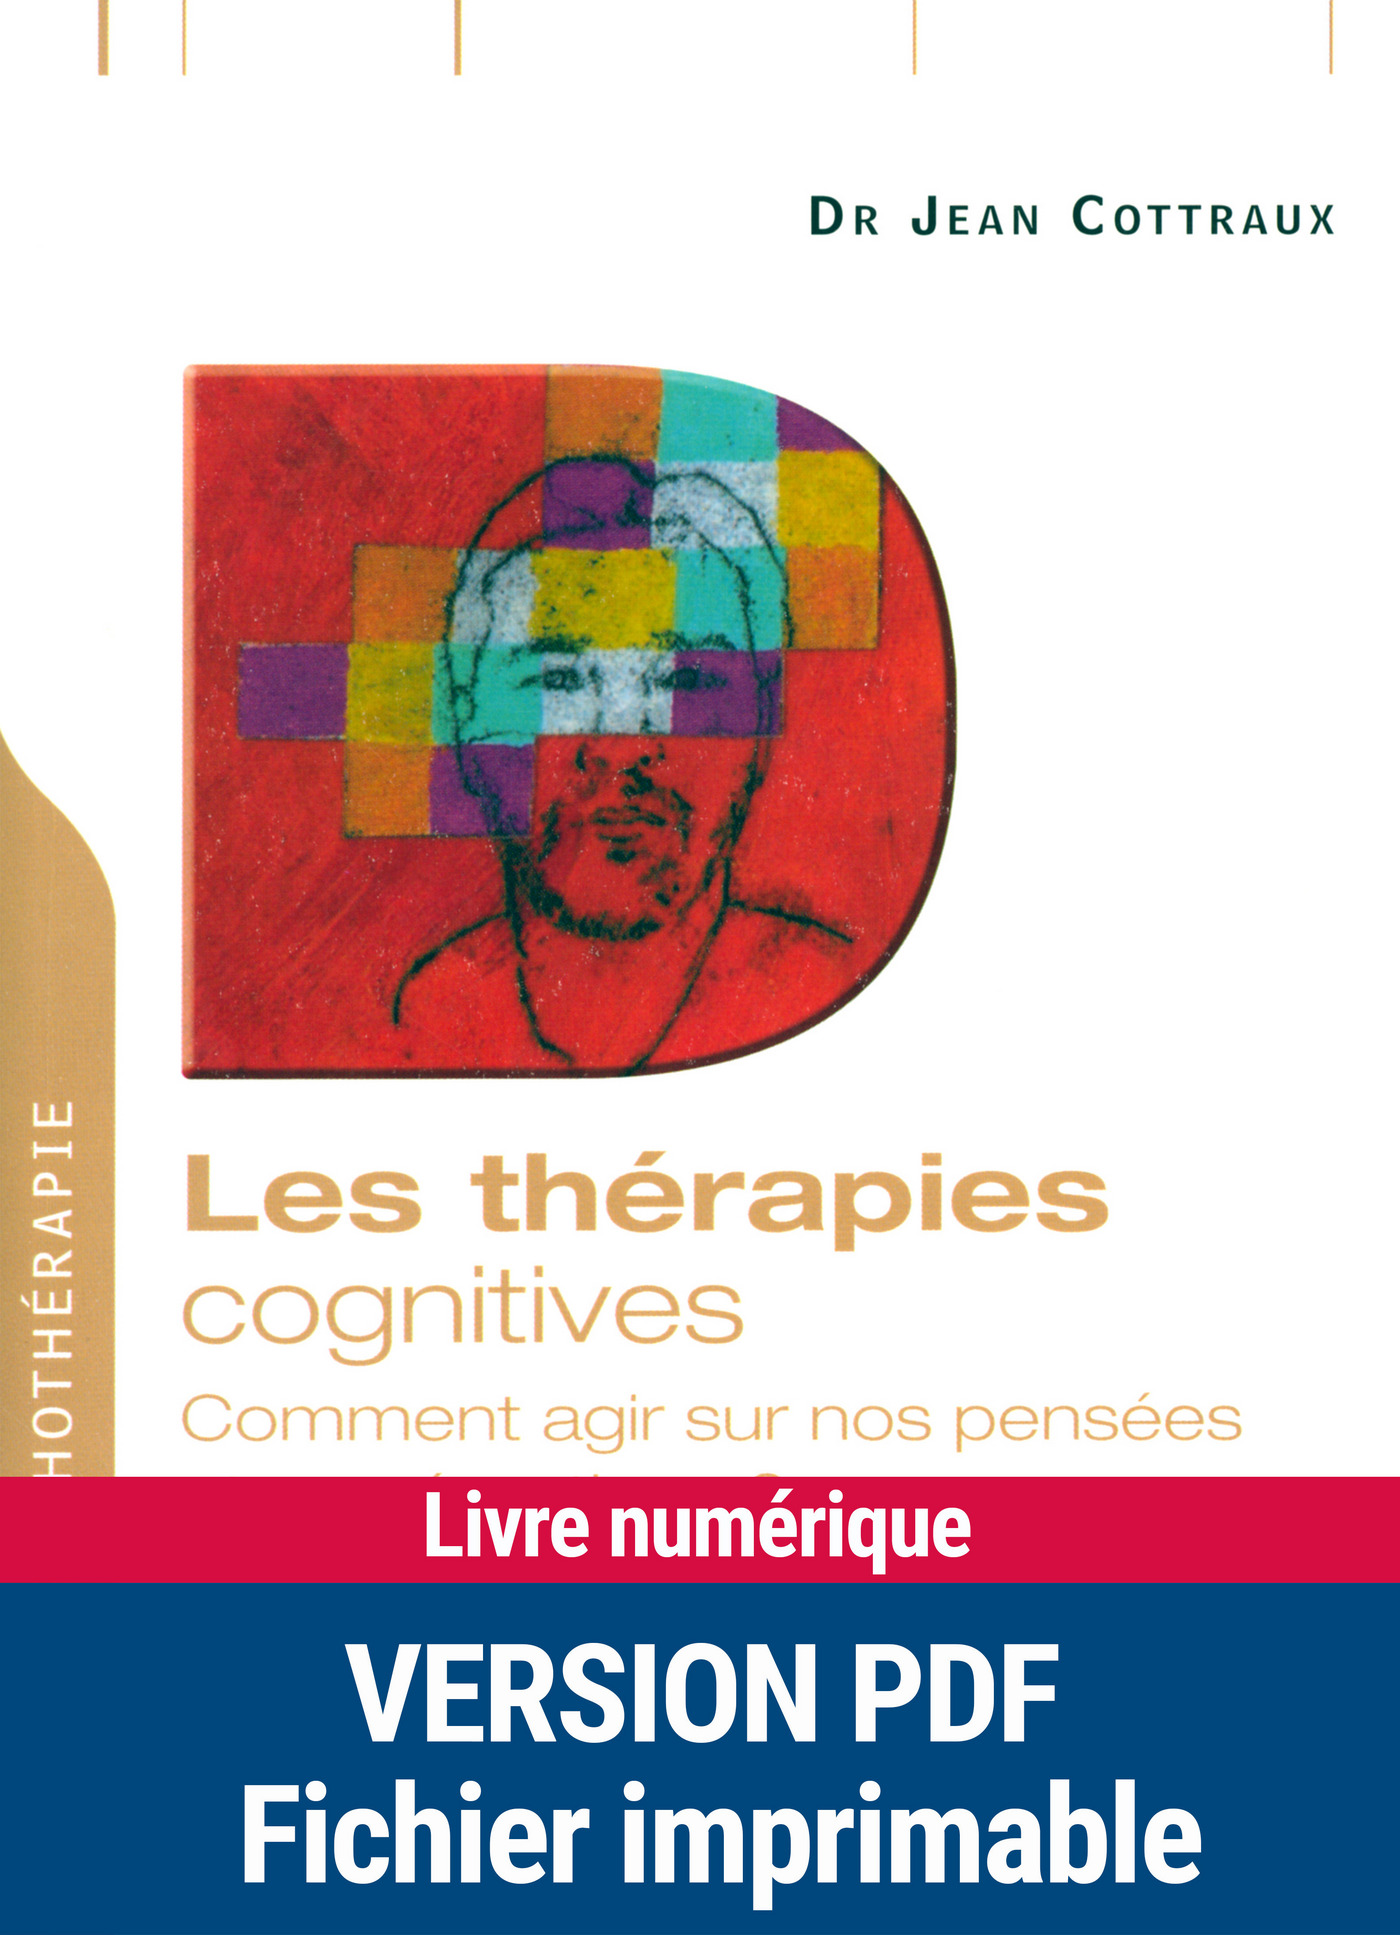 Les thérapies cognitives (ebook)